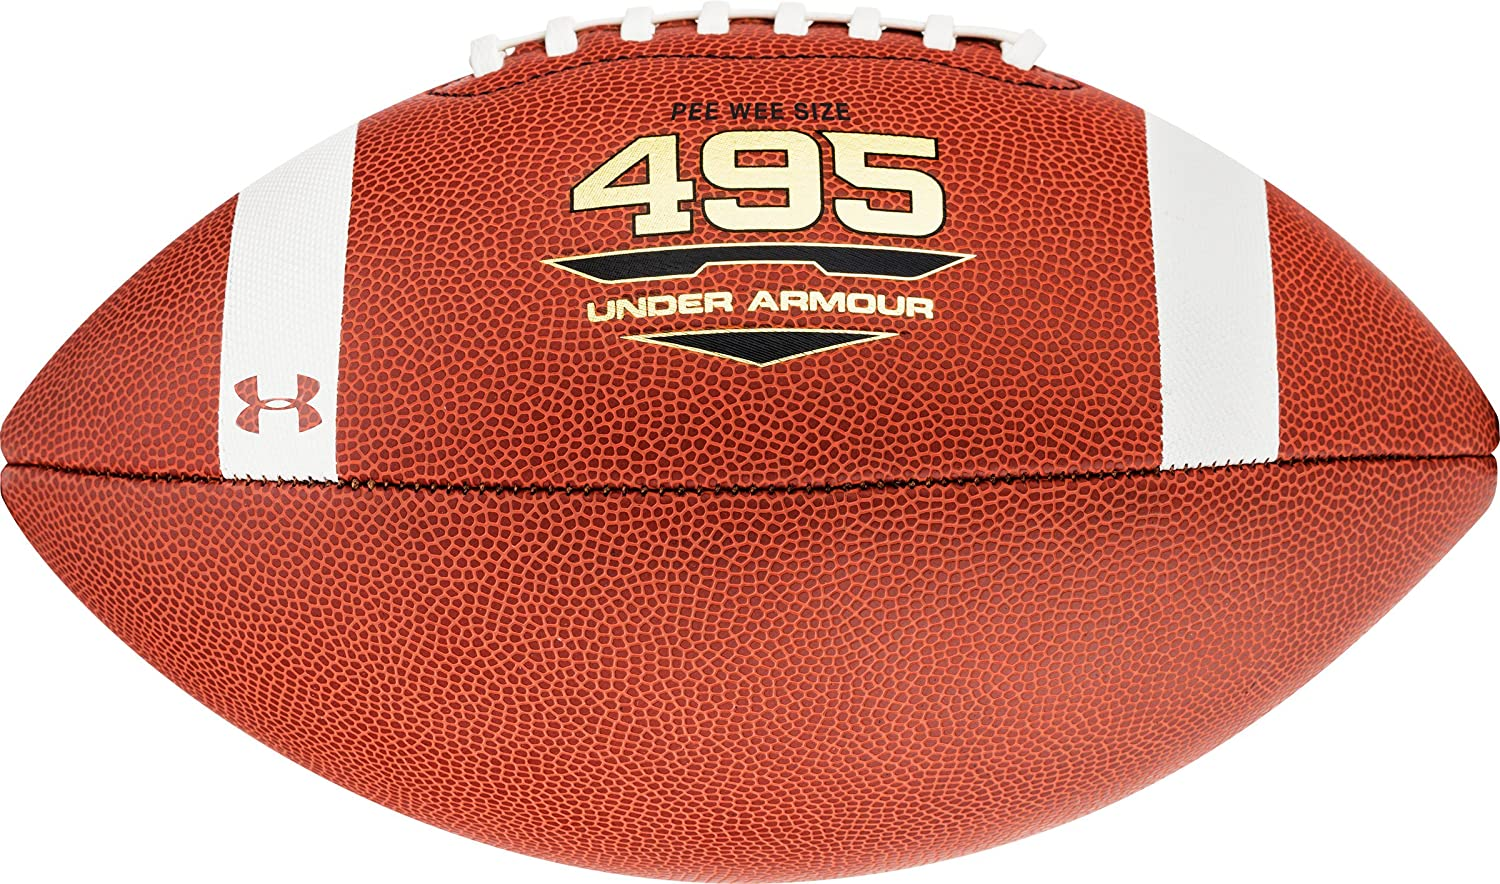 Under Armour 495 Official Football  YOUTH SIZE